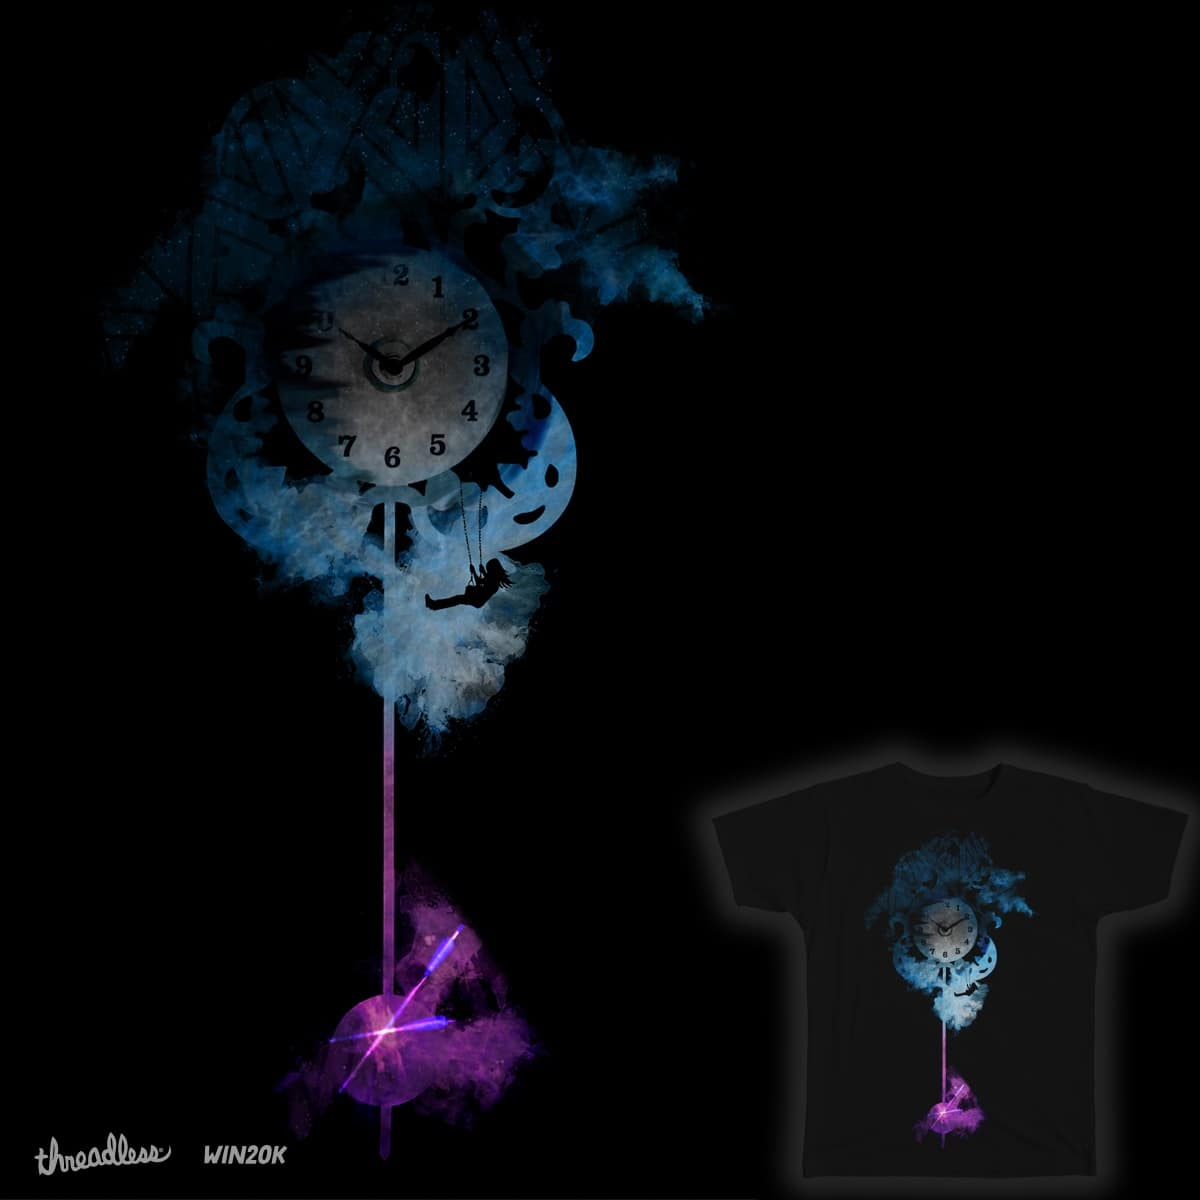 The Sway of Time by czakrzewski on Threadless